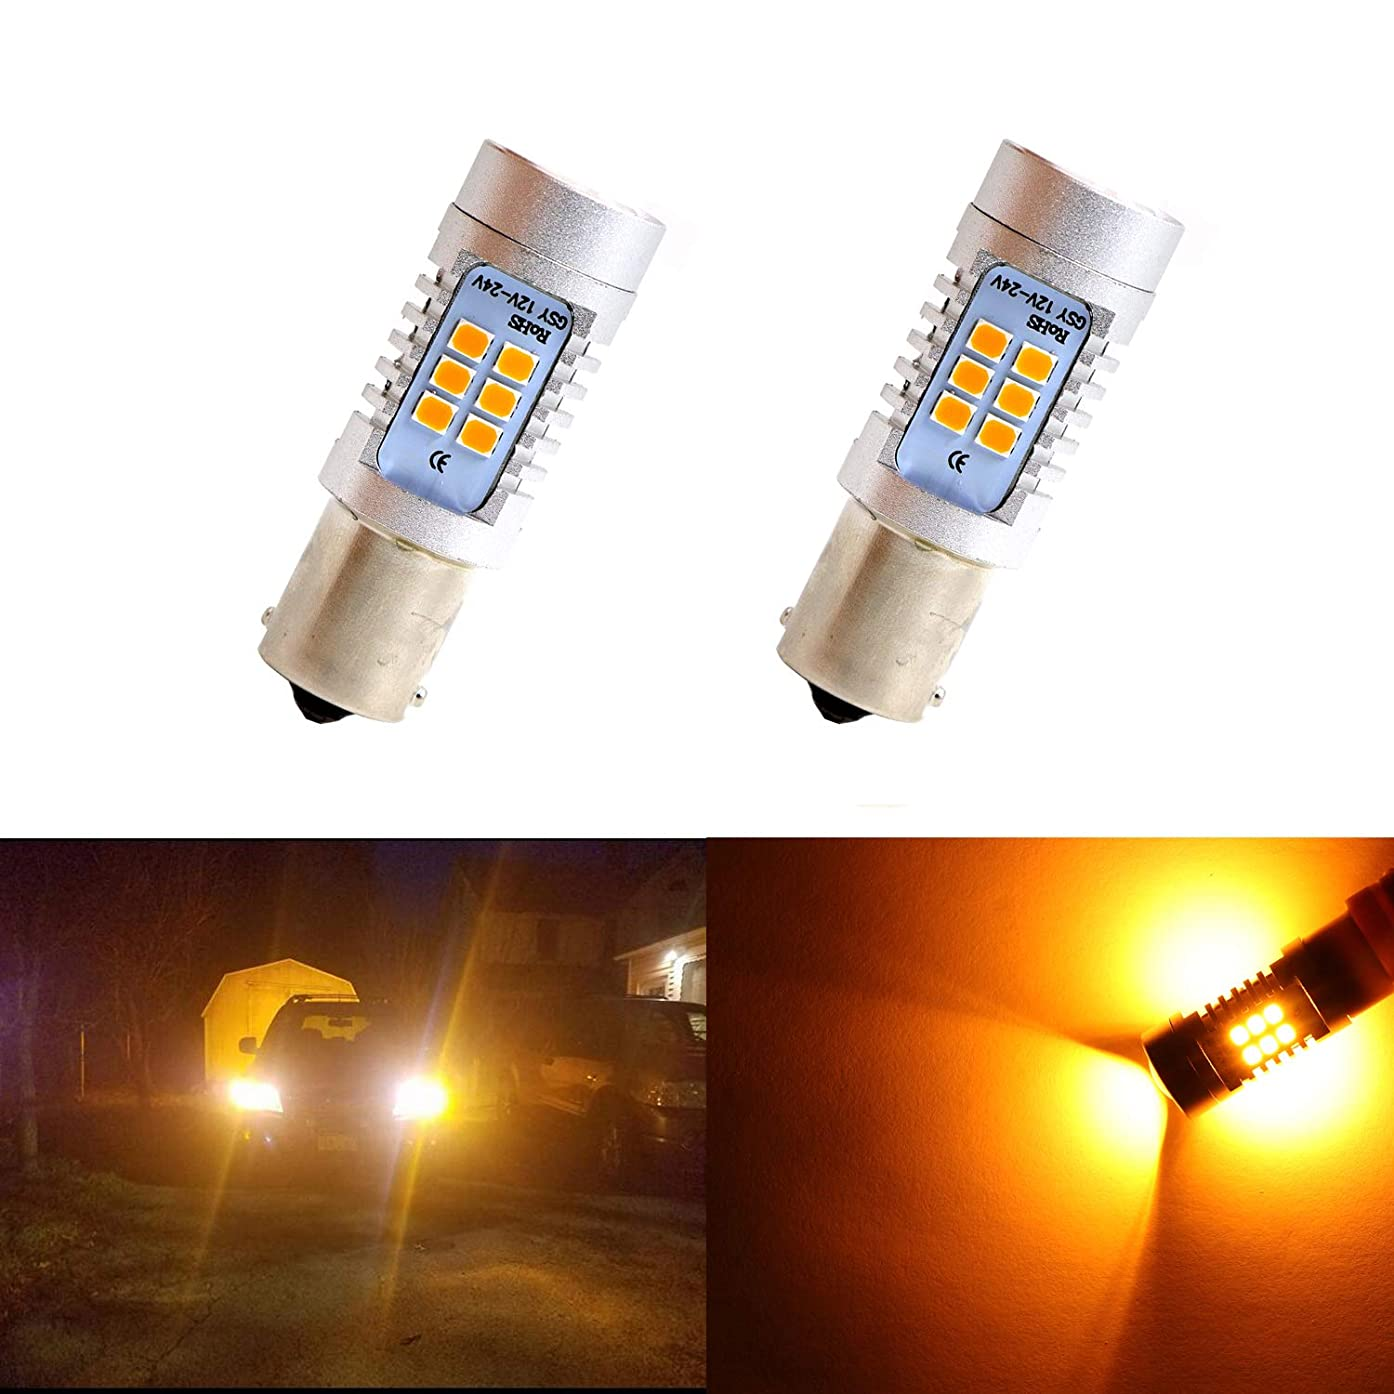 Dantoo 2pcs 1141 1156 Turn Signal Bulbs 21 SMD Extremely Bright Amber Yellow LED Bulbs For Turn Signal Lights Blinker Lamps